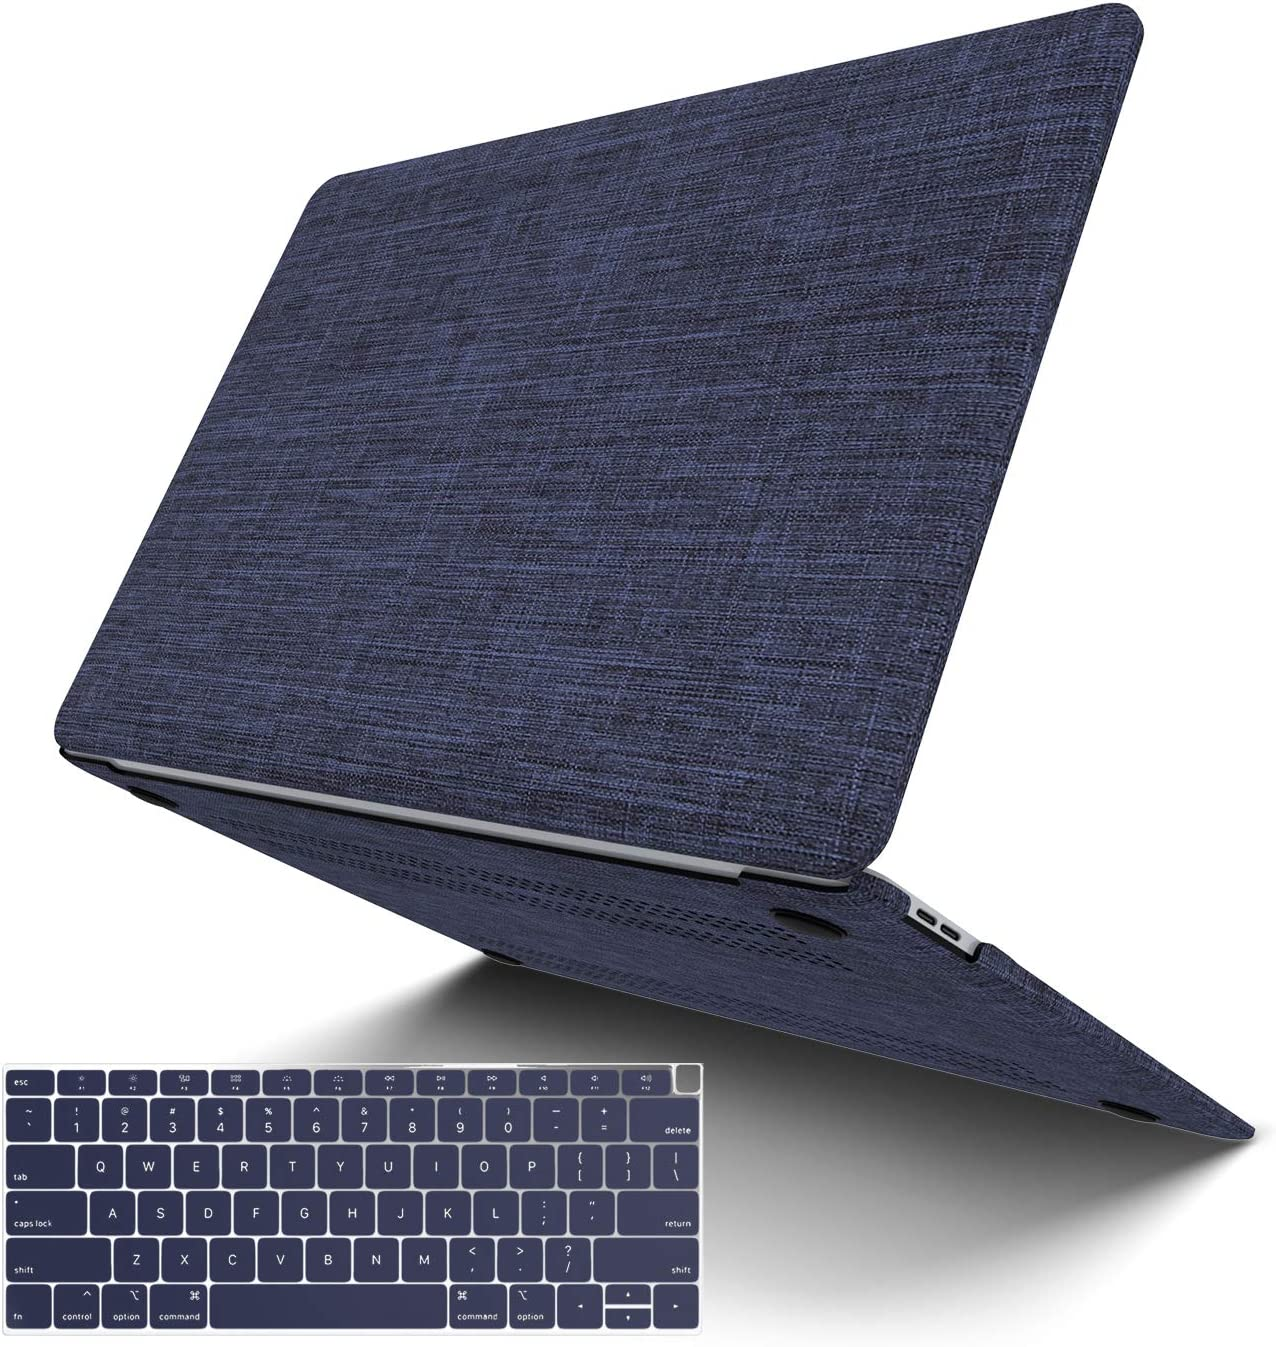 MacBook Pro 15 Inch Case 2019 2018 2017 2016 Release A1990 A1707, JGOO Soft Touch Fabric Hard Shell Cover Case with Keyboard Cover for Apple MacBook Pro 15 with Touch Bar, Blue